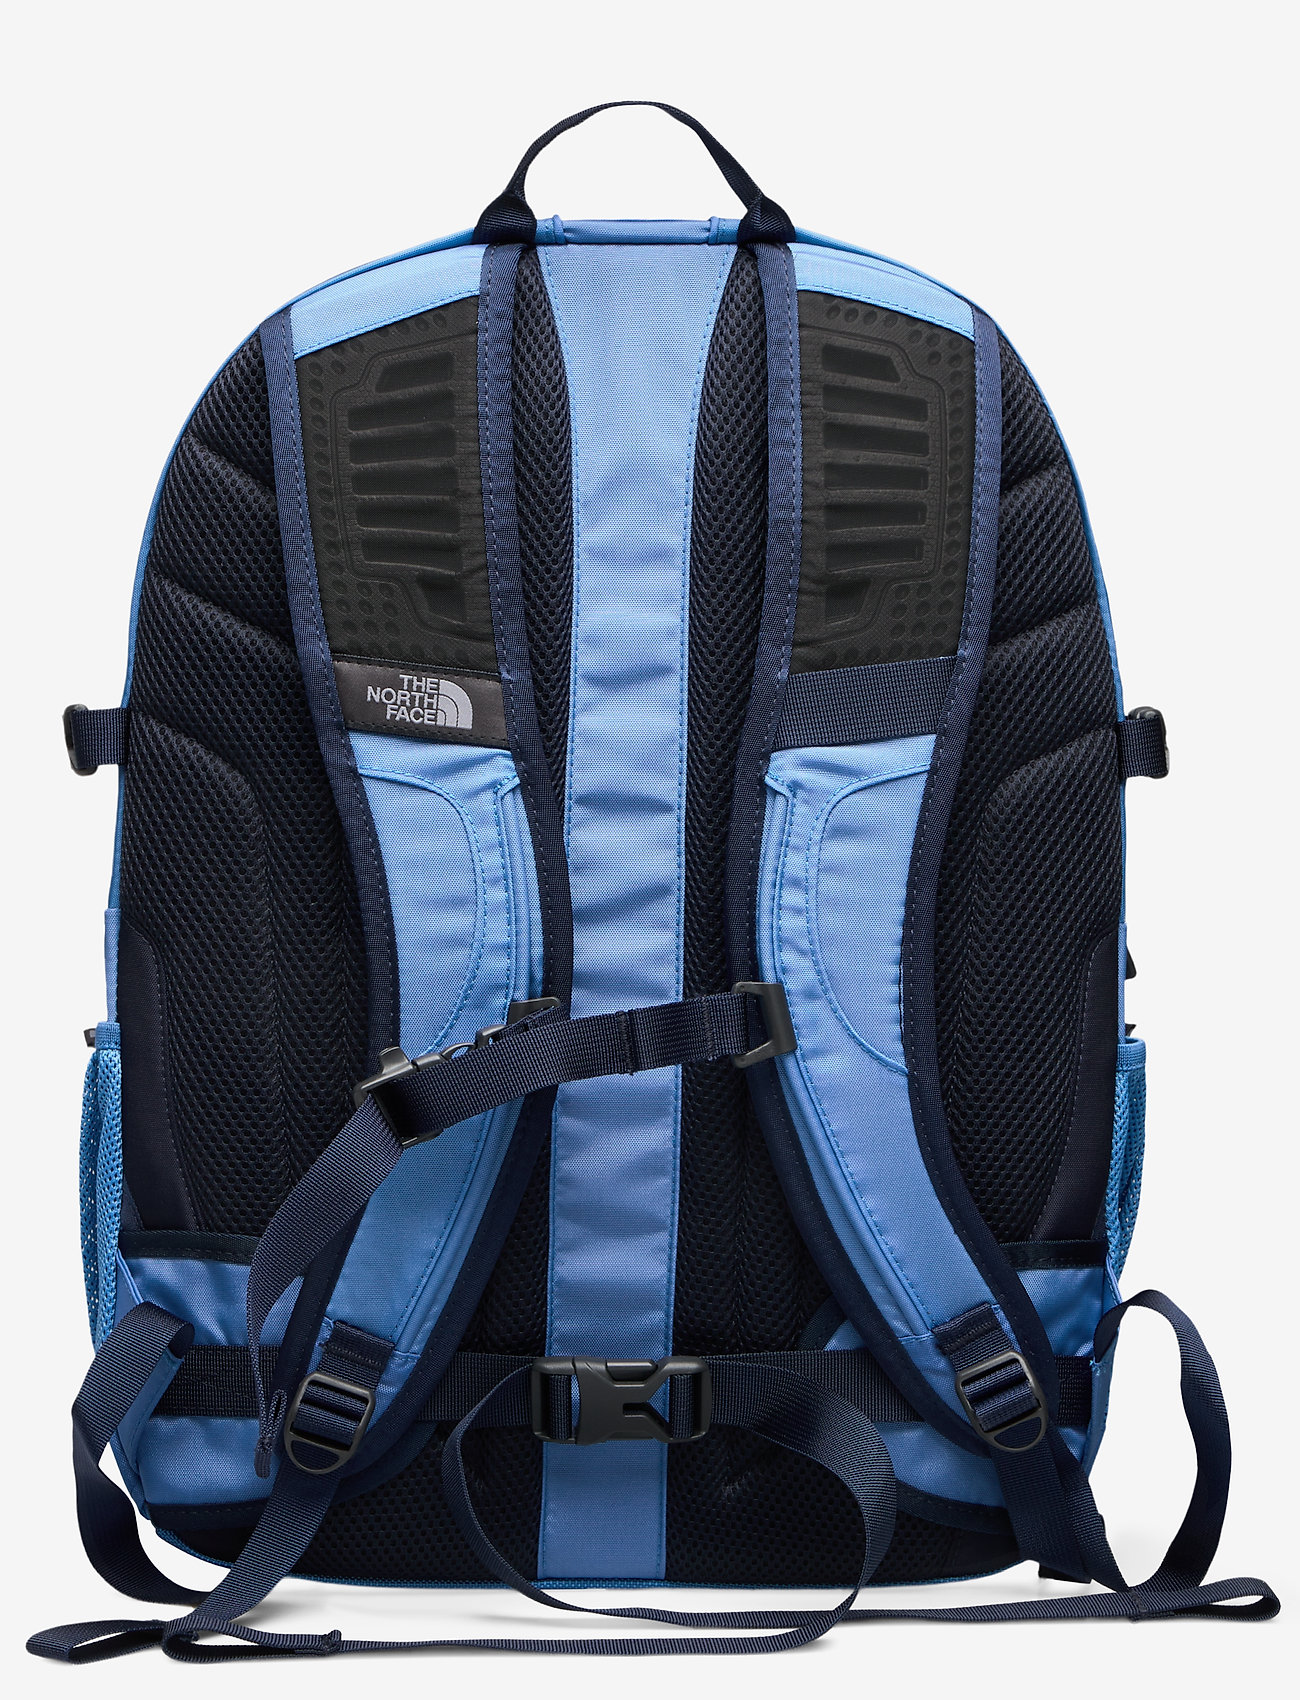 The North Face - BOREALIS CLASSIC - torby treningowe - donnrbl/urbnavy - 1